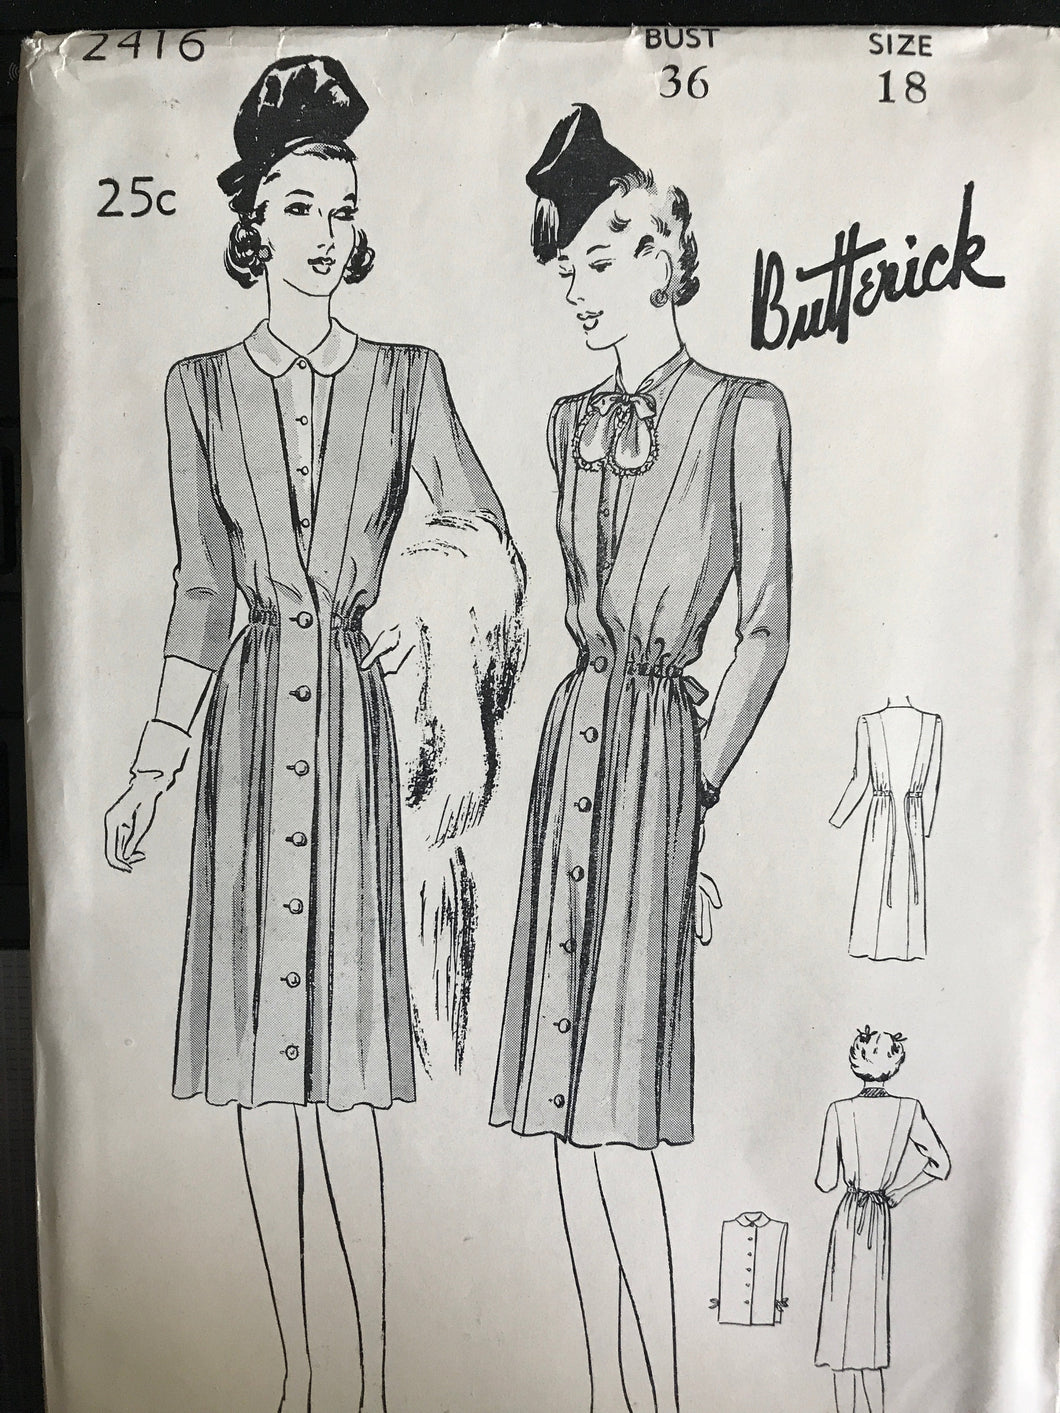 1940's Butterick One Piece Maternity Dress with Tie Back and Dickey - Bust 36